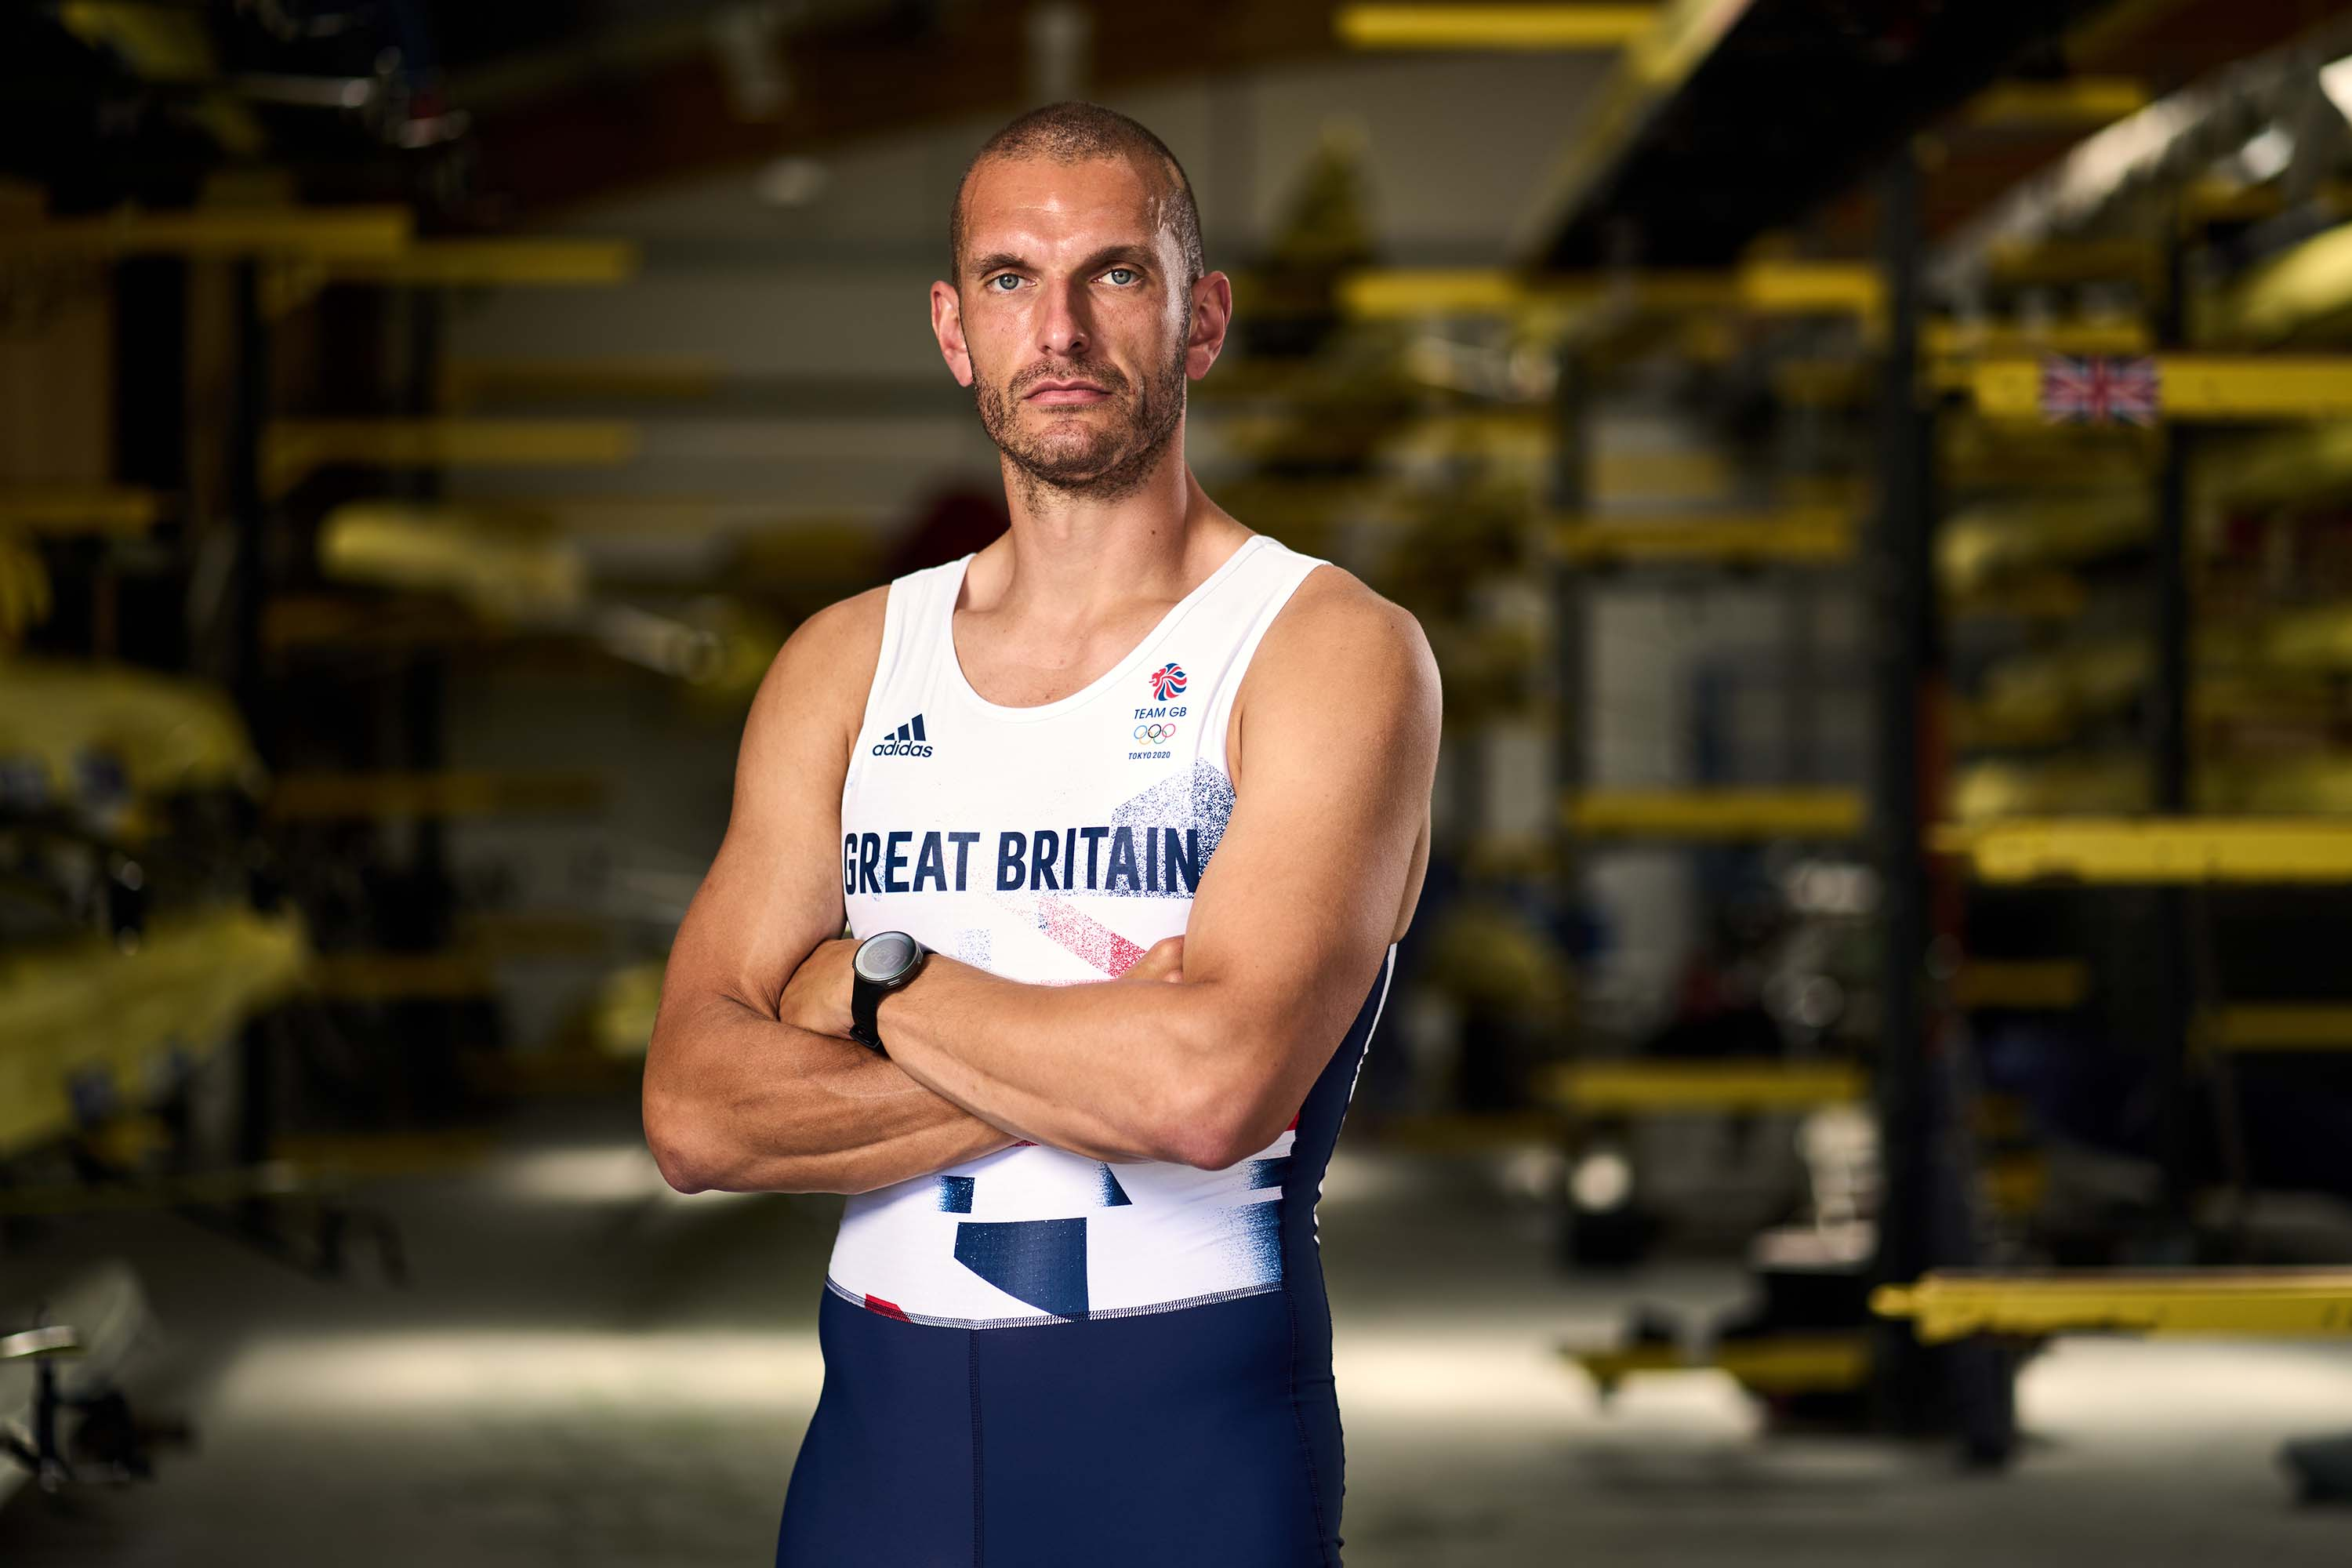 Great Britain's Mohamed Sbihi during the Team GB Tokyo 2020 Rowing team announcement at the Redgrave Pinsent Rowing Lake, Reading. Picture date: Wednesday June 9, 2021. (Photo by John Walton/PA Images via Getty Images)